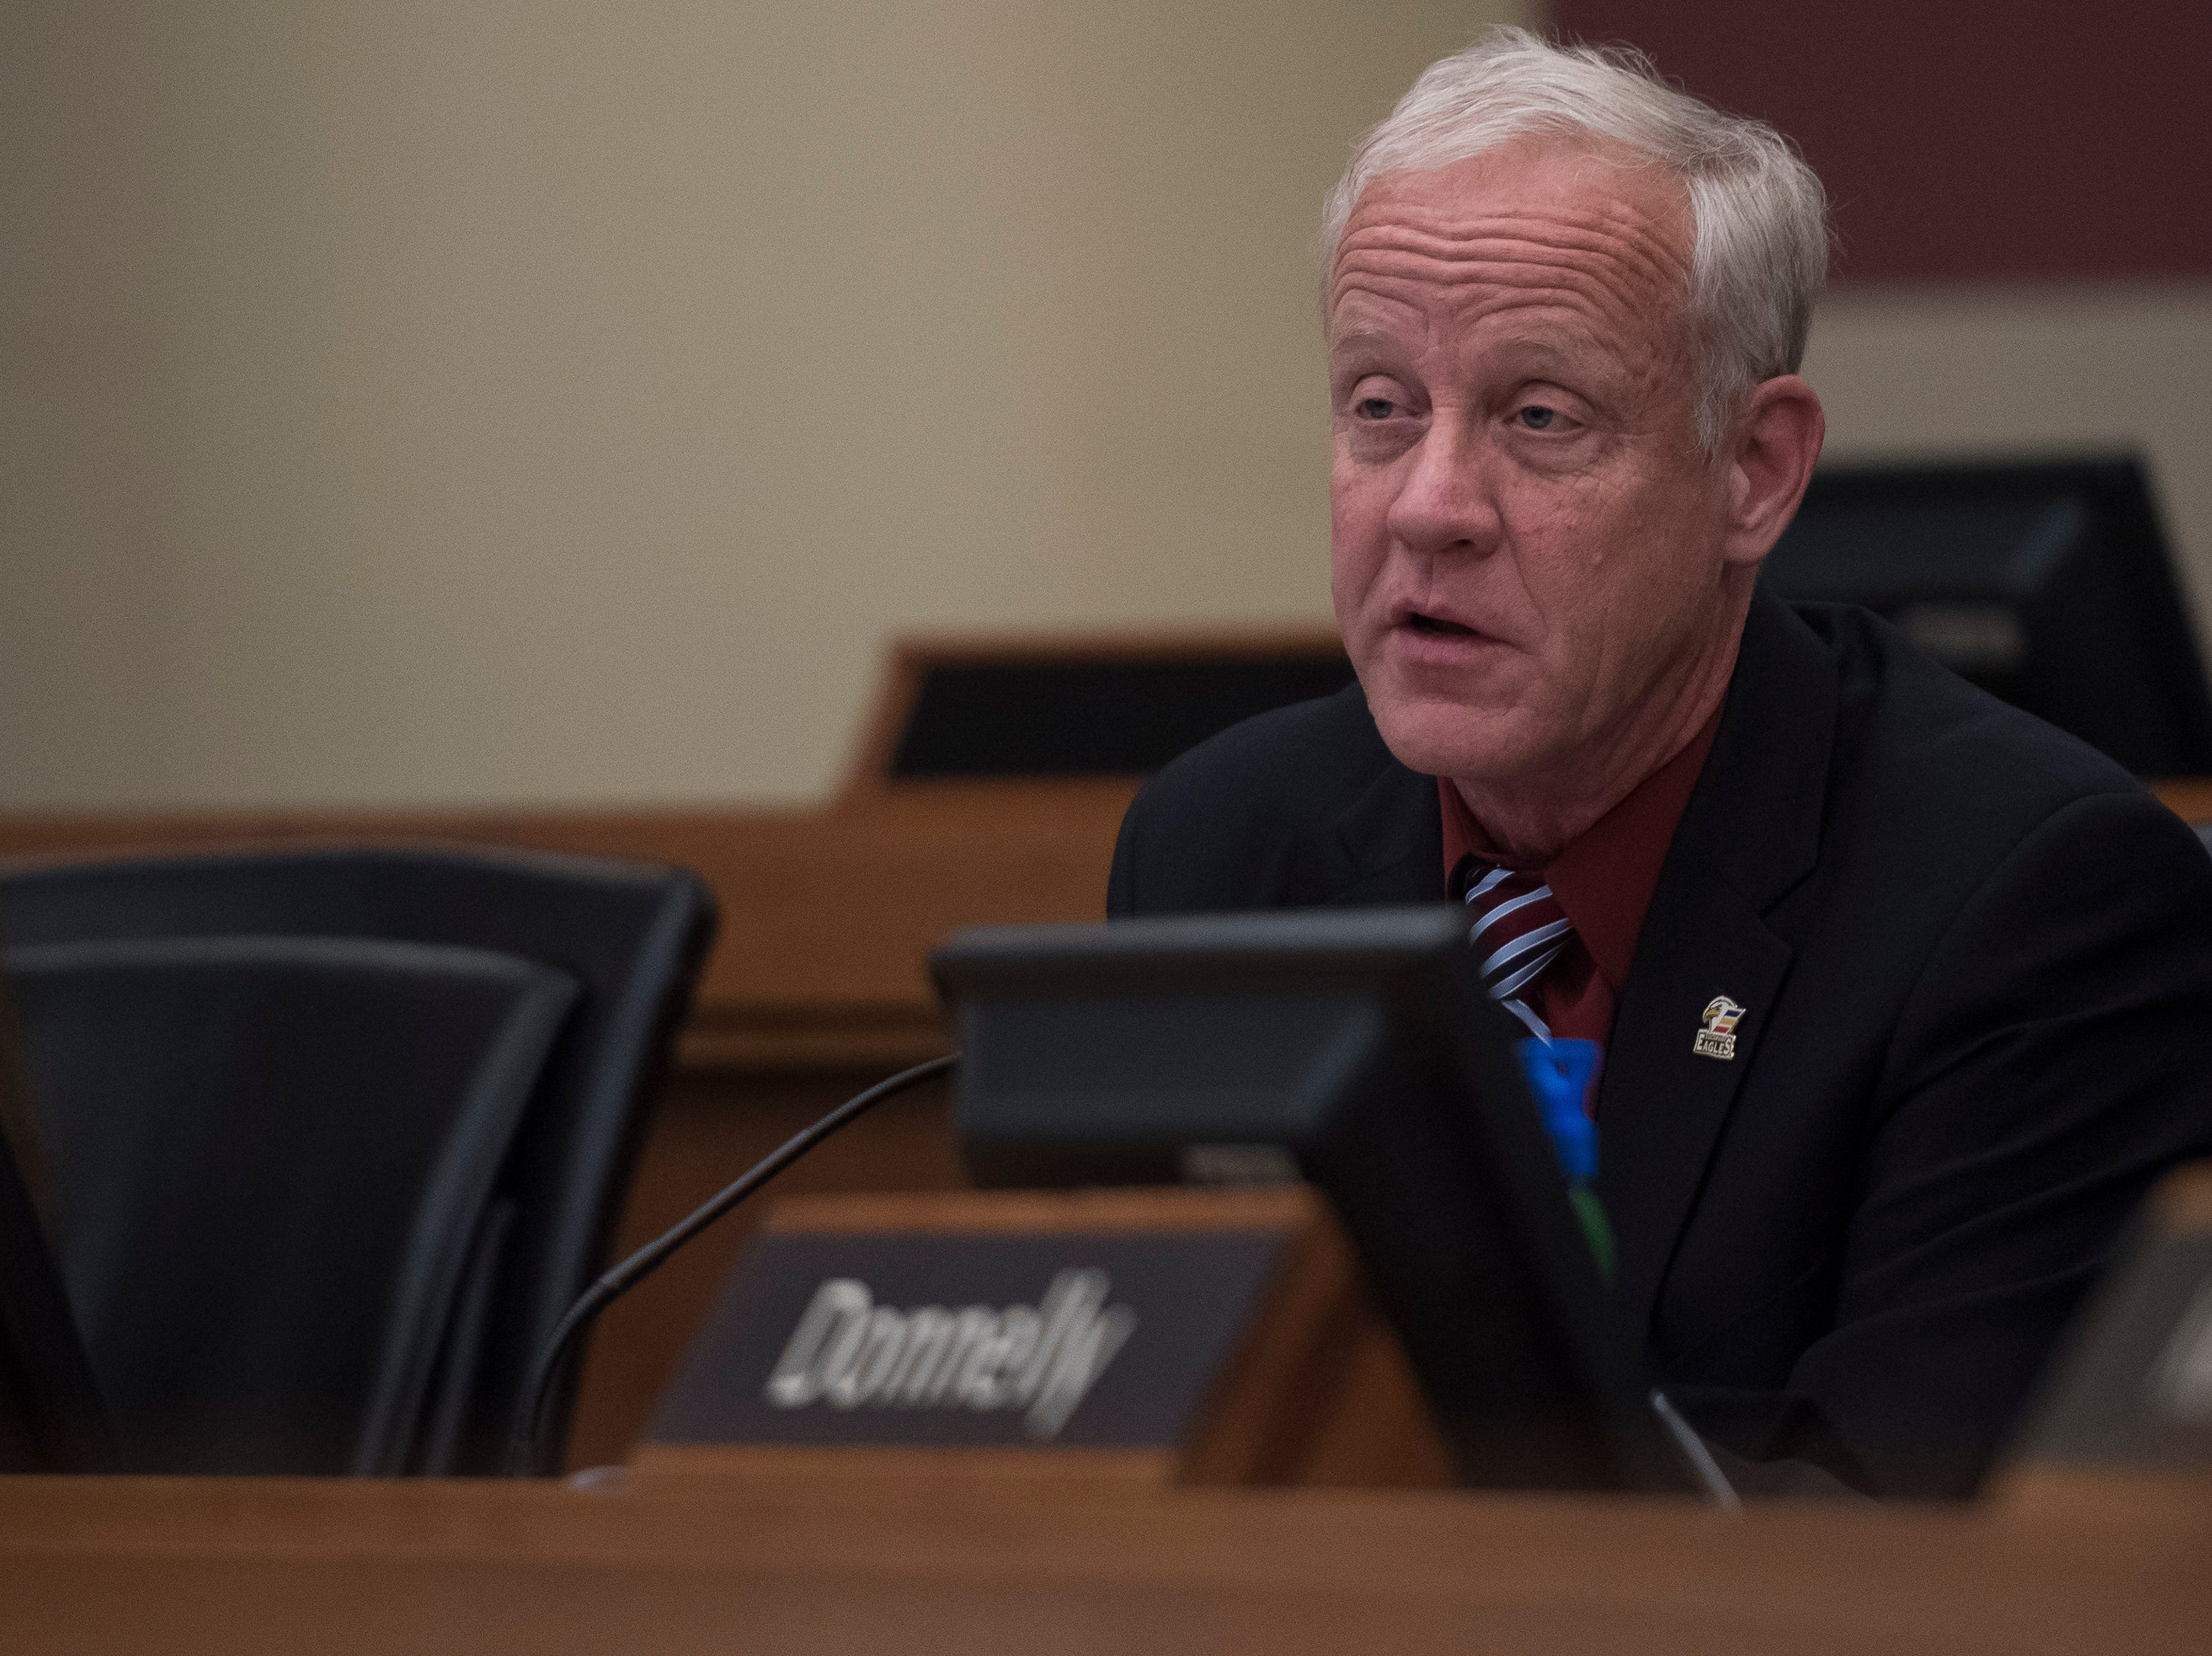 Larimer County Commissioners Steve Johnson votes against the current construction proposition of the Thornton pipeline on Monday, Feb. 11, 2019, in Fort Collins, Colo.